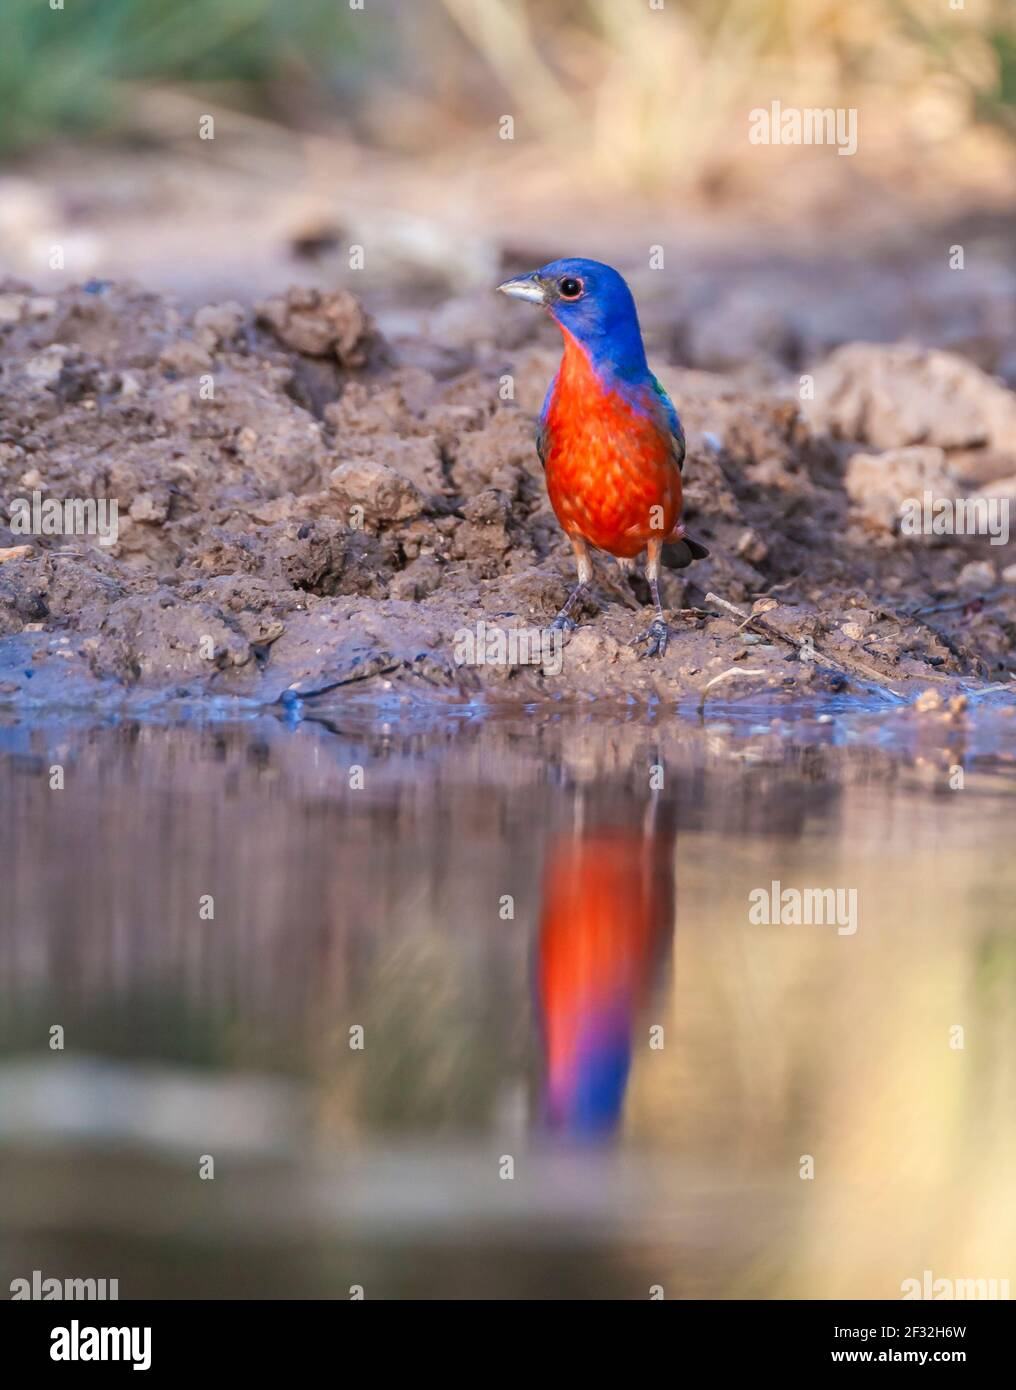 Painted Bunting, Passerina ciris, amazingly colorful bird, looking for water and relief from summer heat, on a ranch in South Texas. Stock Photo